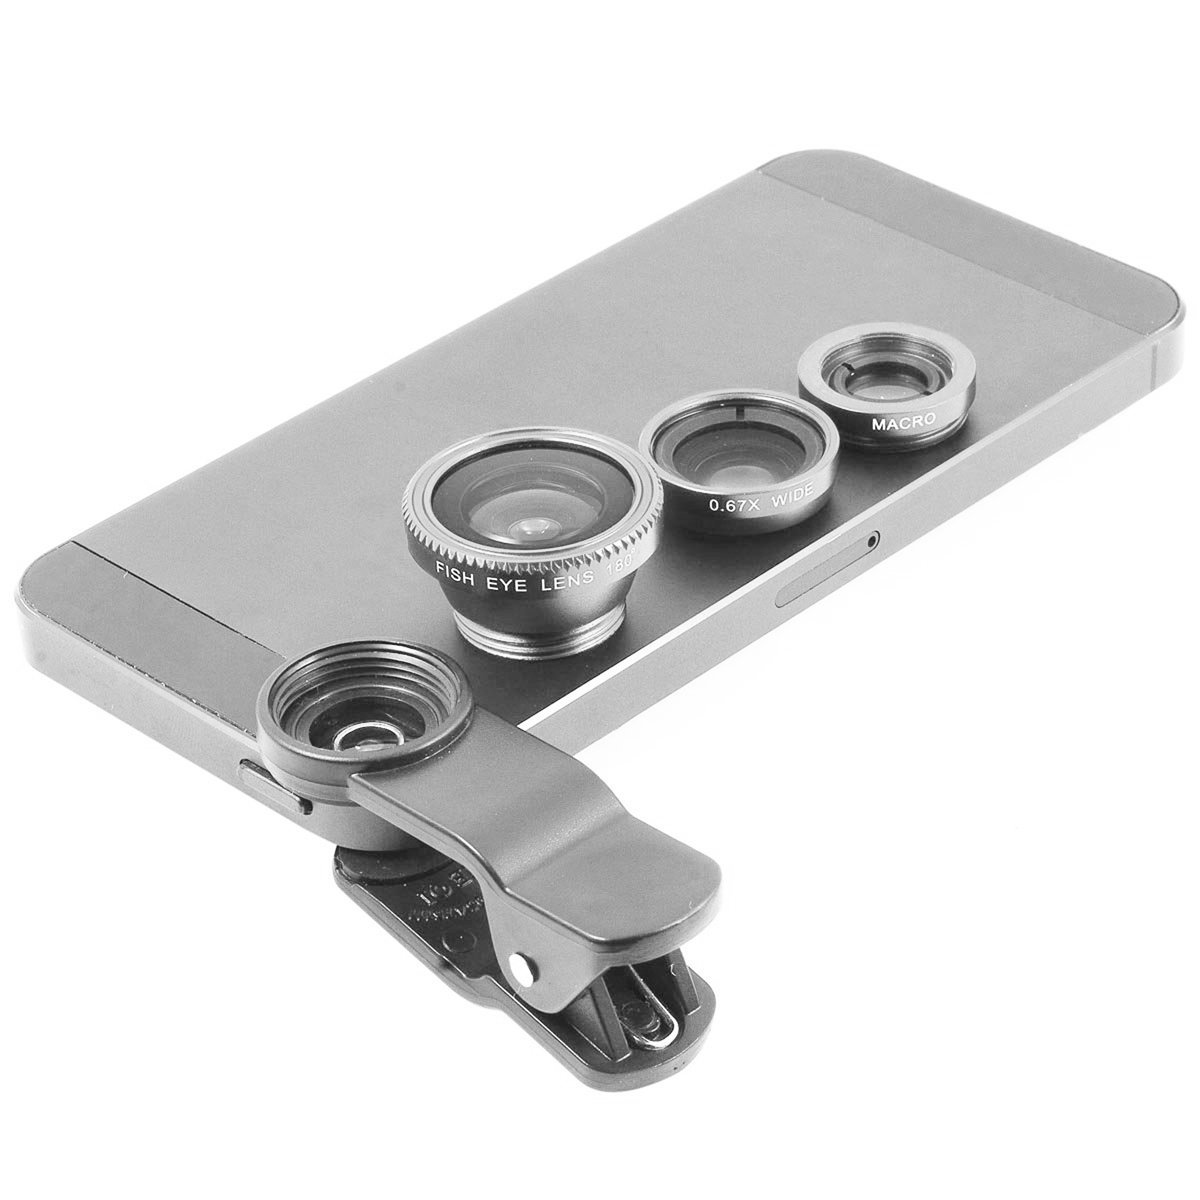 Gray Universal Clip-on 180 degree 3 in 1 Fisheye+Wide Angle+Macro Camera Lens Kit for iPhone 5 5S 4 4S 6 Samsung Galaxy S5/S4/S3 Note 4/3/2 HTC Blackberry Bold Touch, Sony Xperia, Motorola Droid